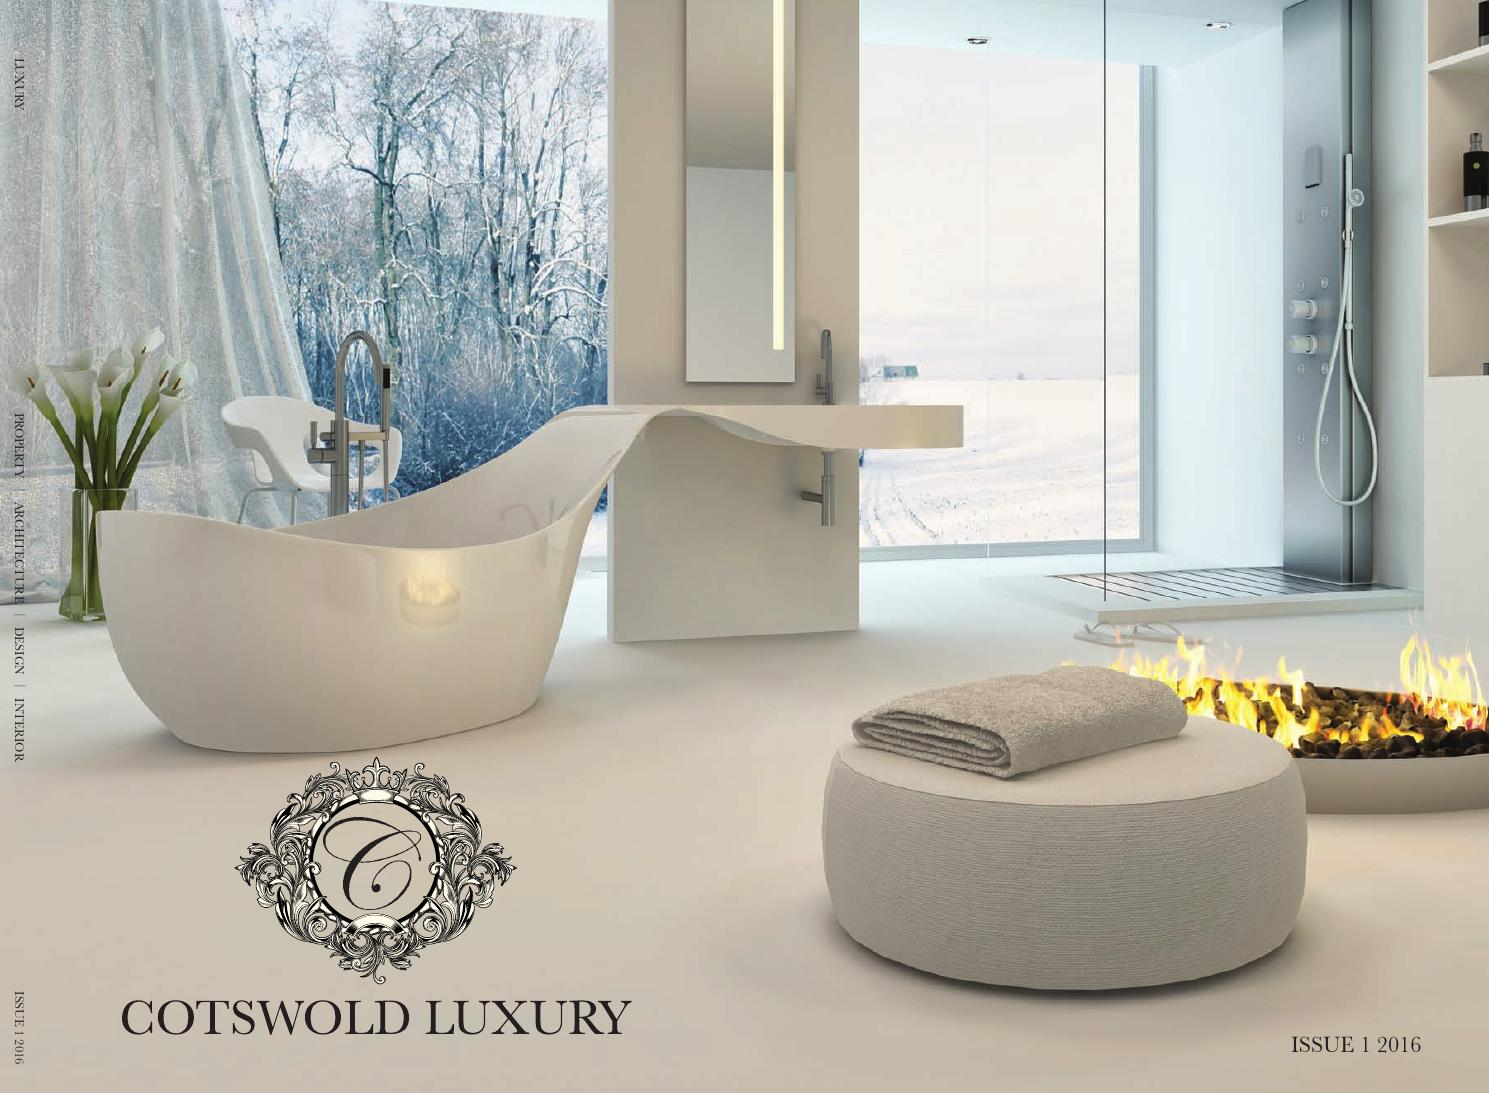 Cotswold Luxury Issue 1 2016 By Style Ltd